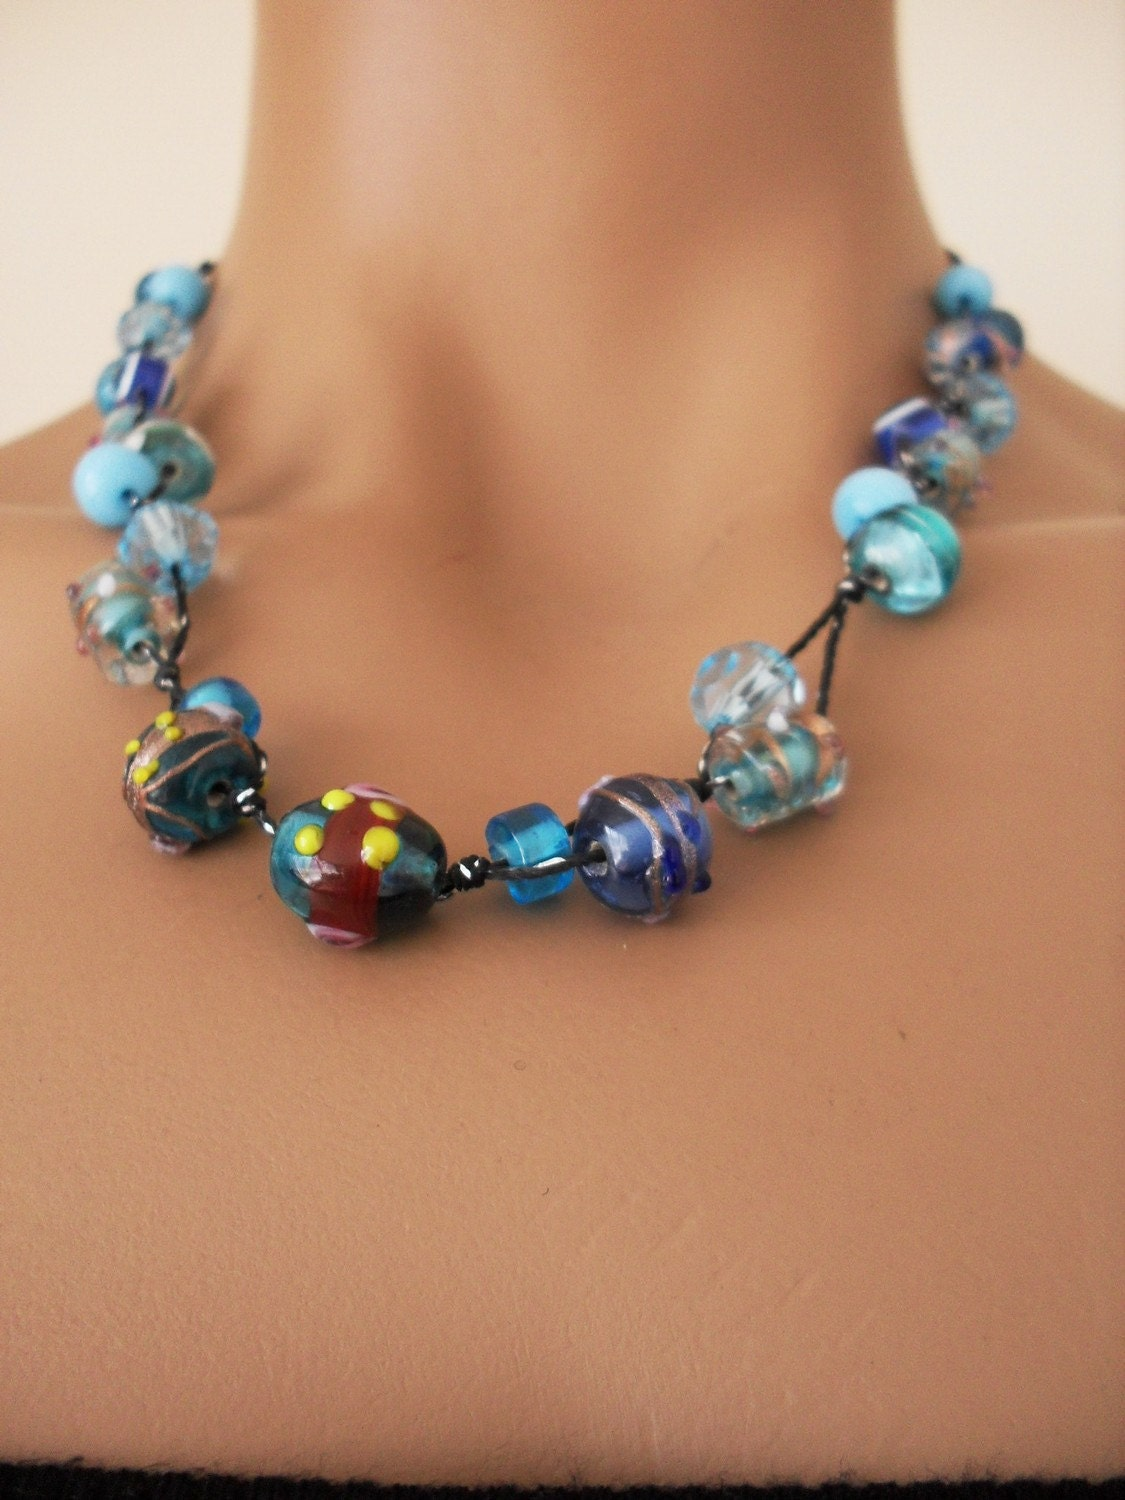 Handmade Very Chic Glass Beads Sky Blue Necklace by divaoutlet from etsy.com